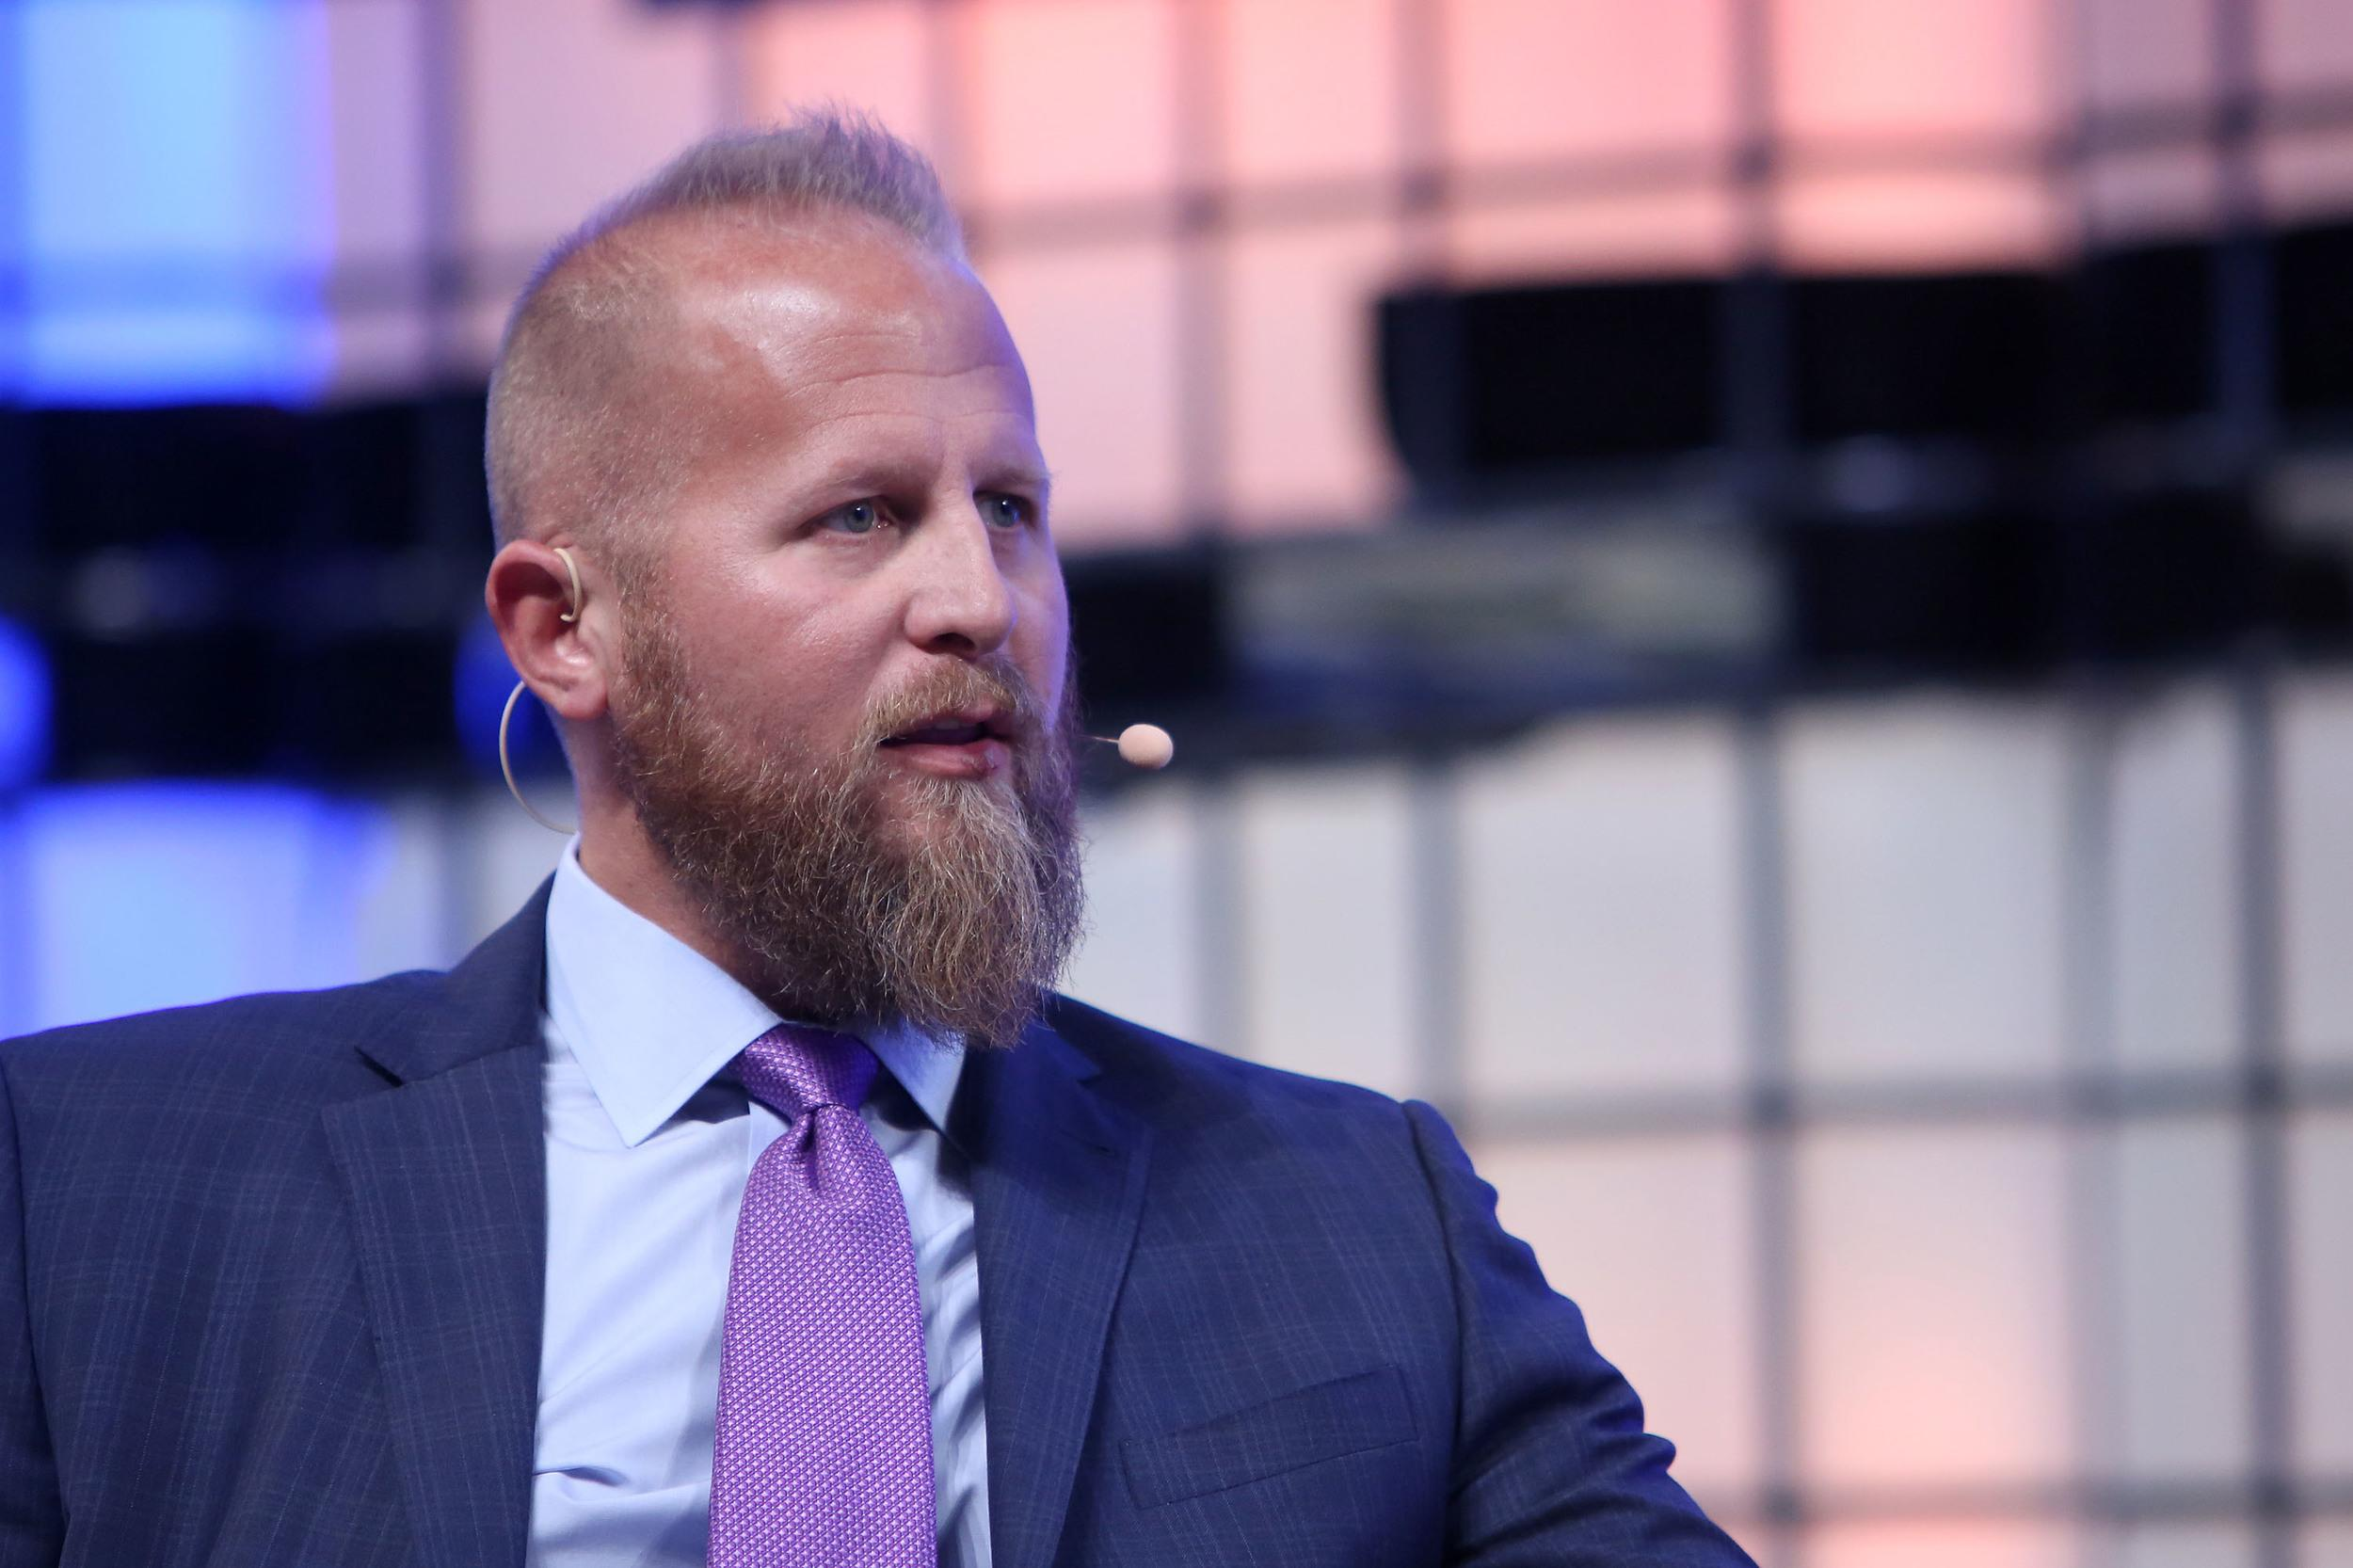 (FILE) - Brad Parscale, Digital Director, Donald J. Trump Presidential Campaign, speaks on the third day of the 7th Web Summit in Lisbon, Portugal, 08 November 2017. Media reports on 27 February 2018 state that US President Donald J. Trump has chosen Brad Parscale to run his campaign to win the 2020 re-election bid. ( Photo by Pedro Fi�za/NurPhoto via Getty Images)